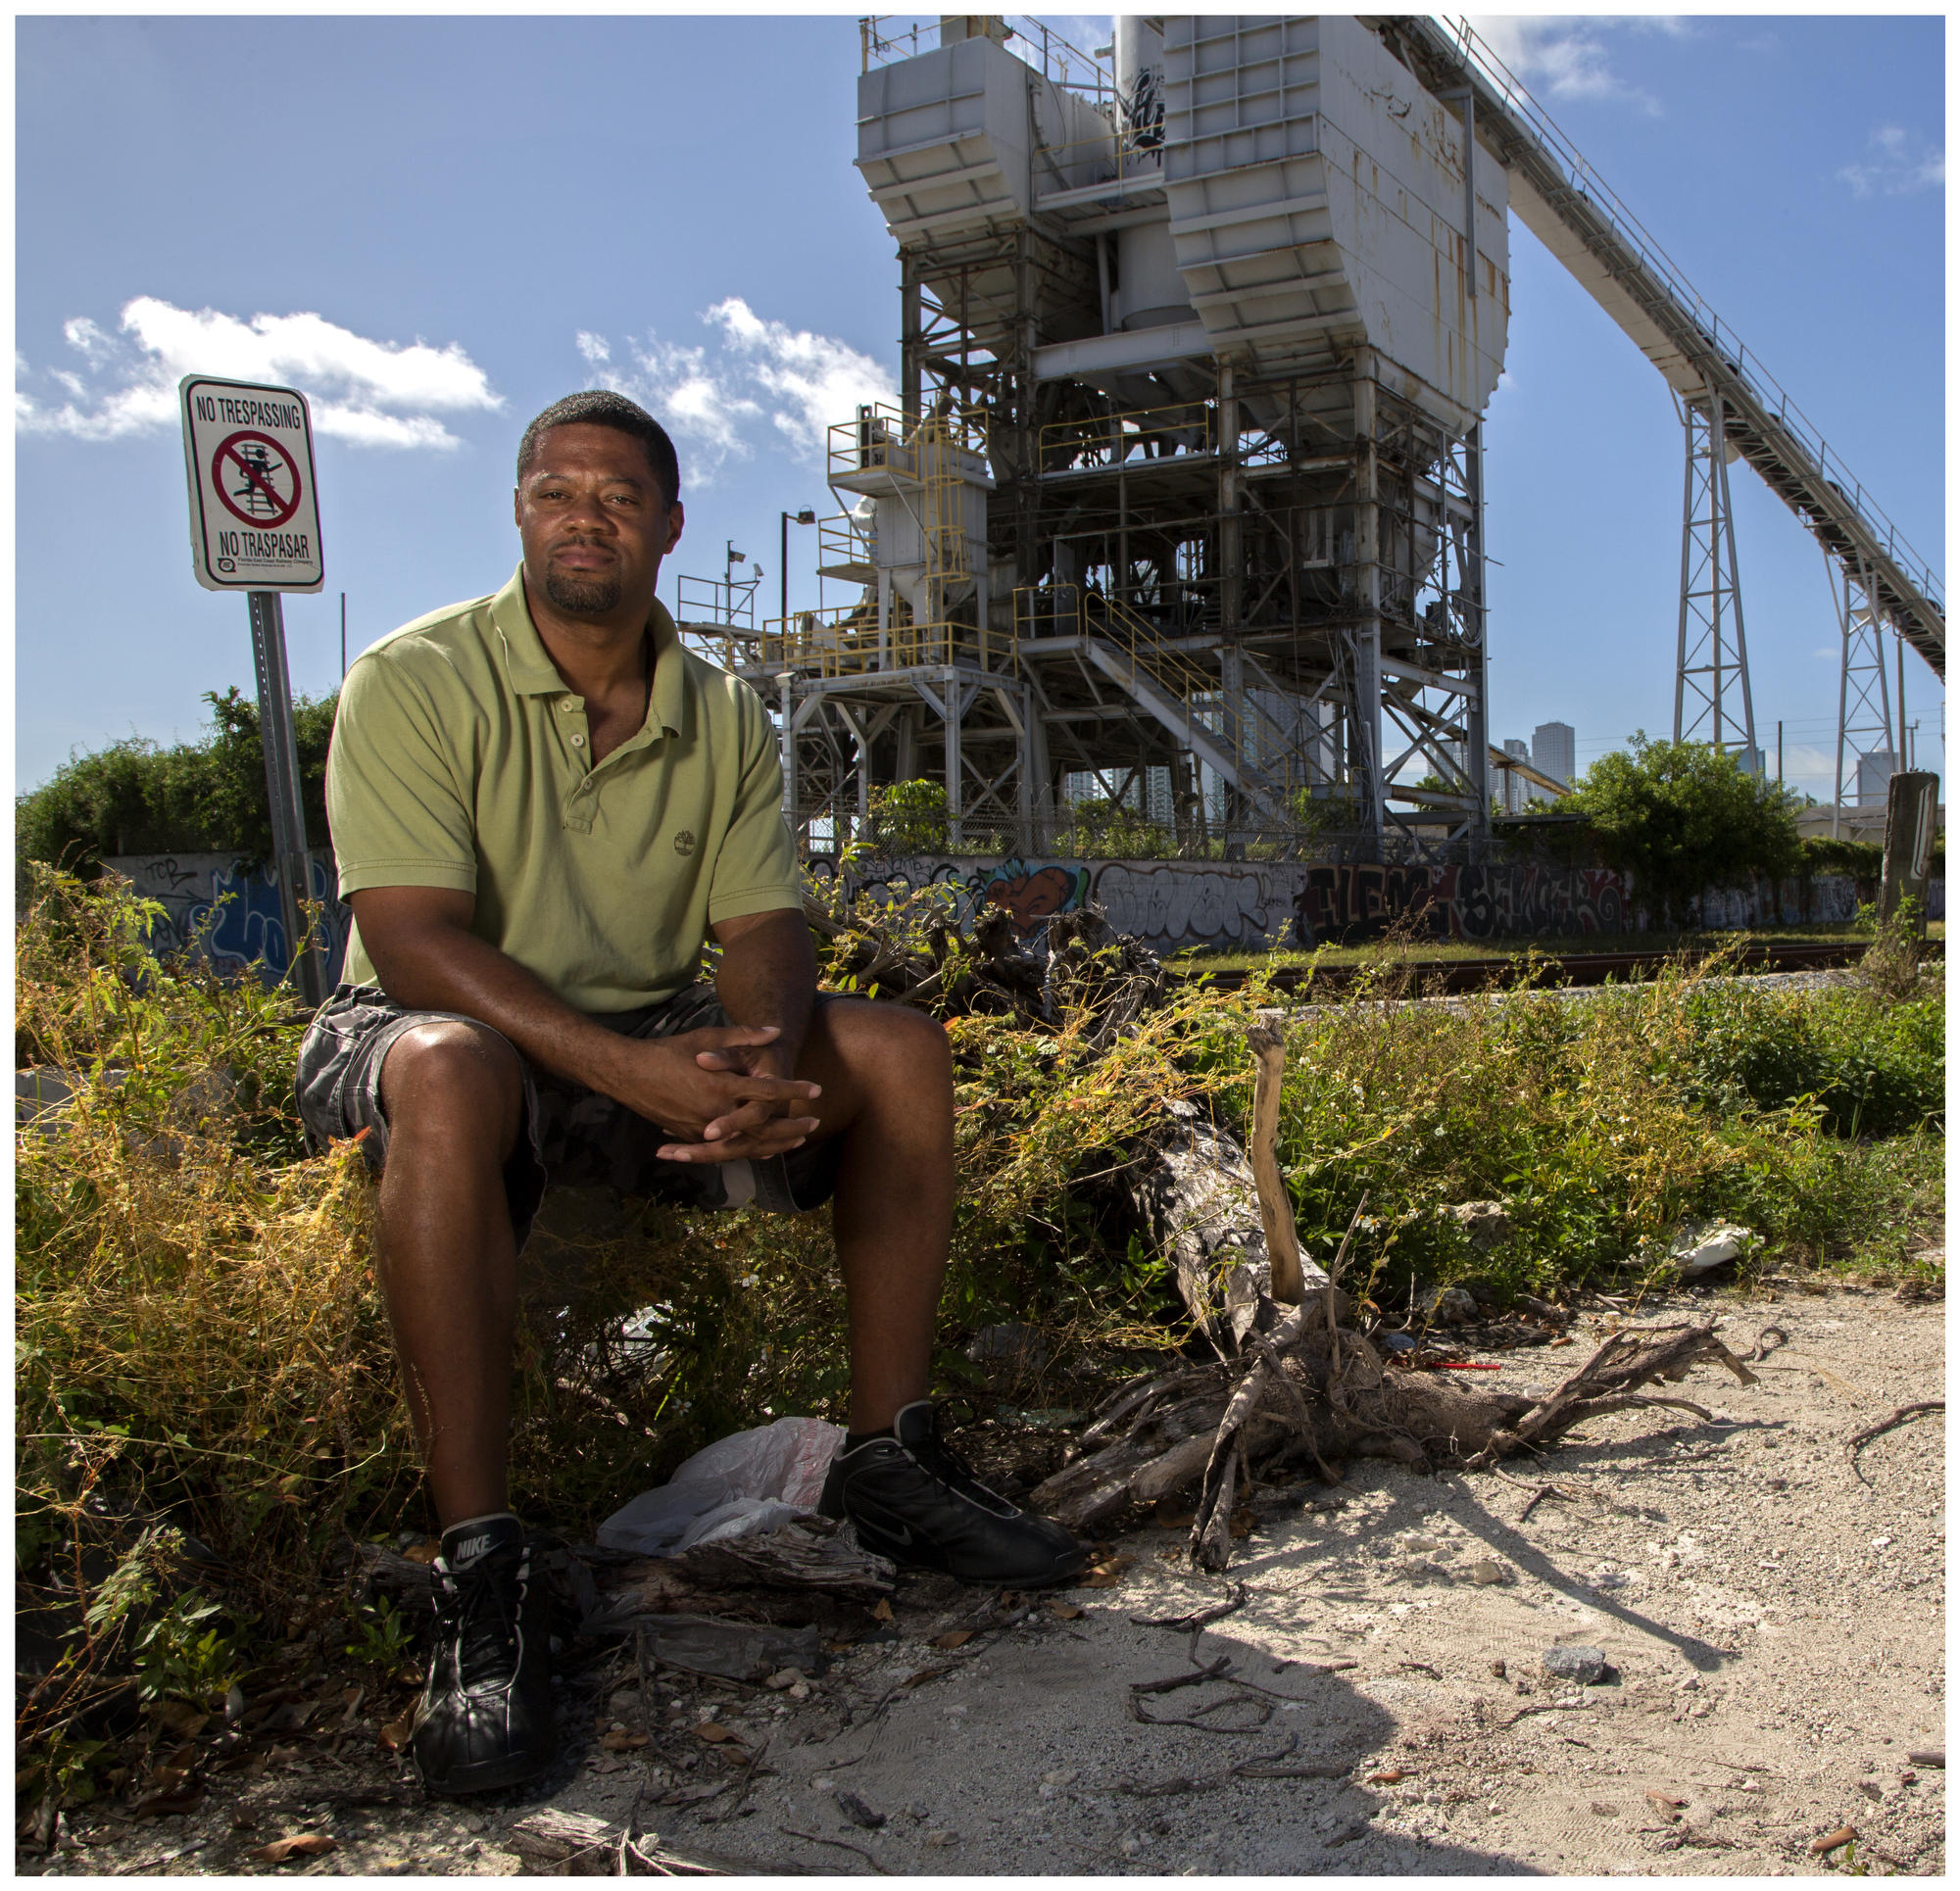 Overtown Rail Crossing Is Hotspot For Arrests, But Most Are